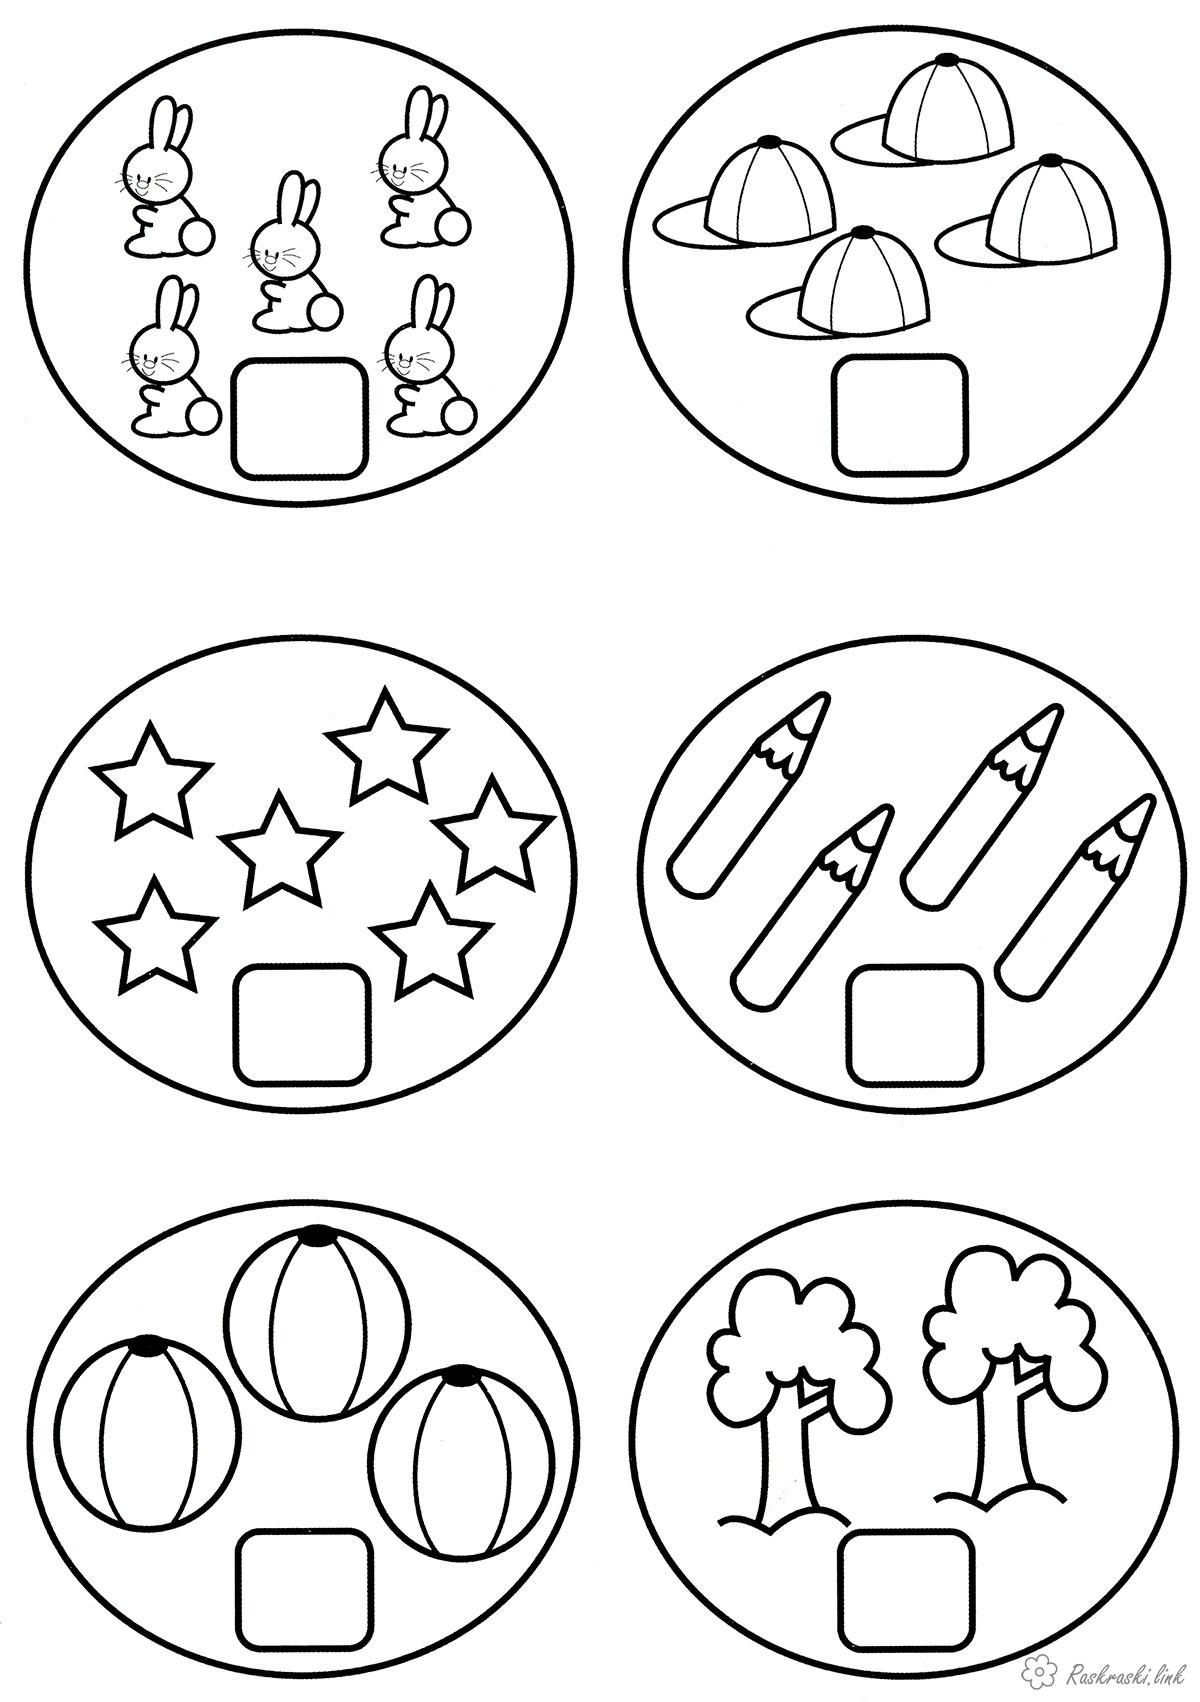 Coloring objects coloring pages pages for preschoolers math, educational coloring pages books, count objects